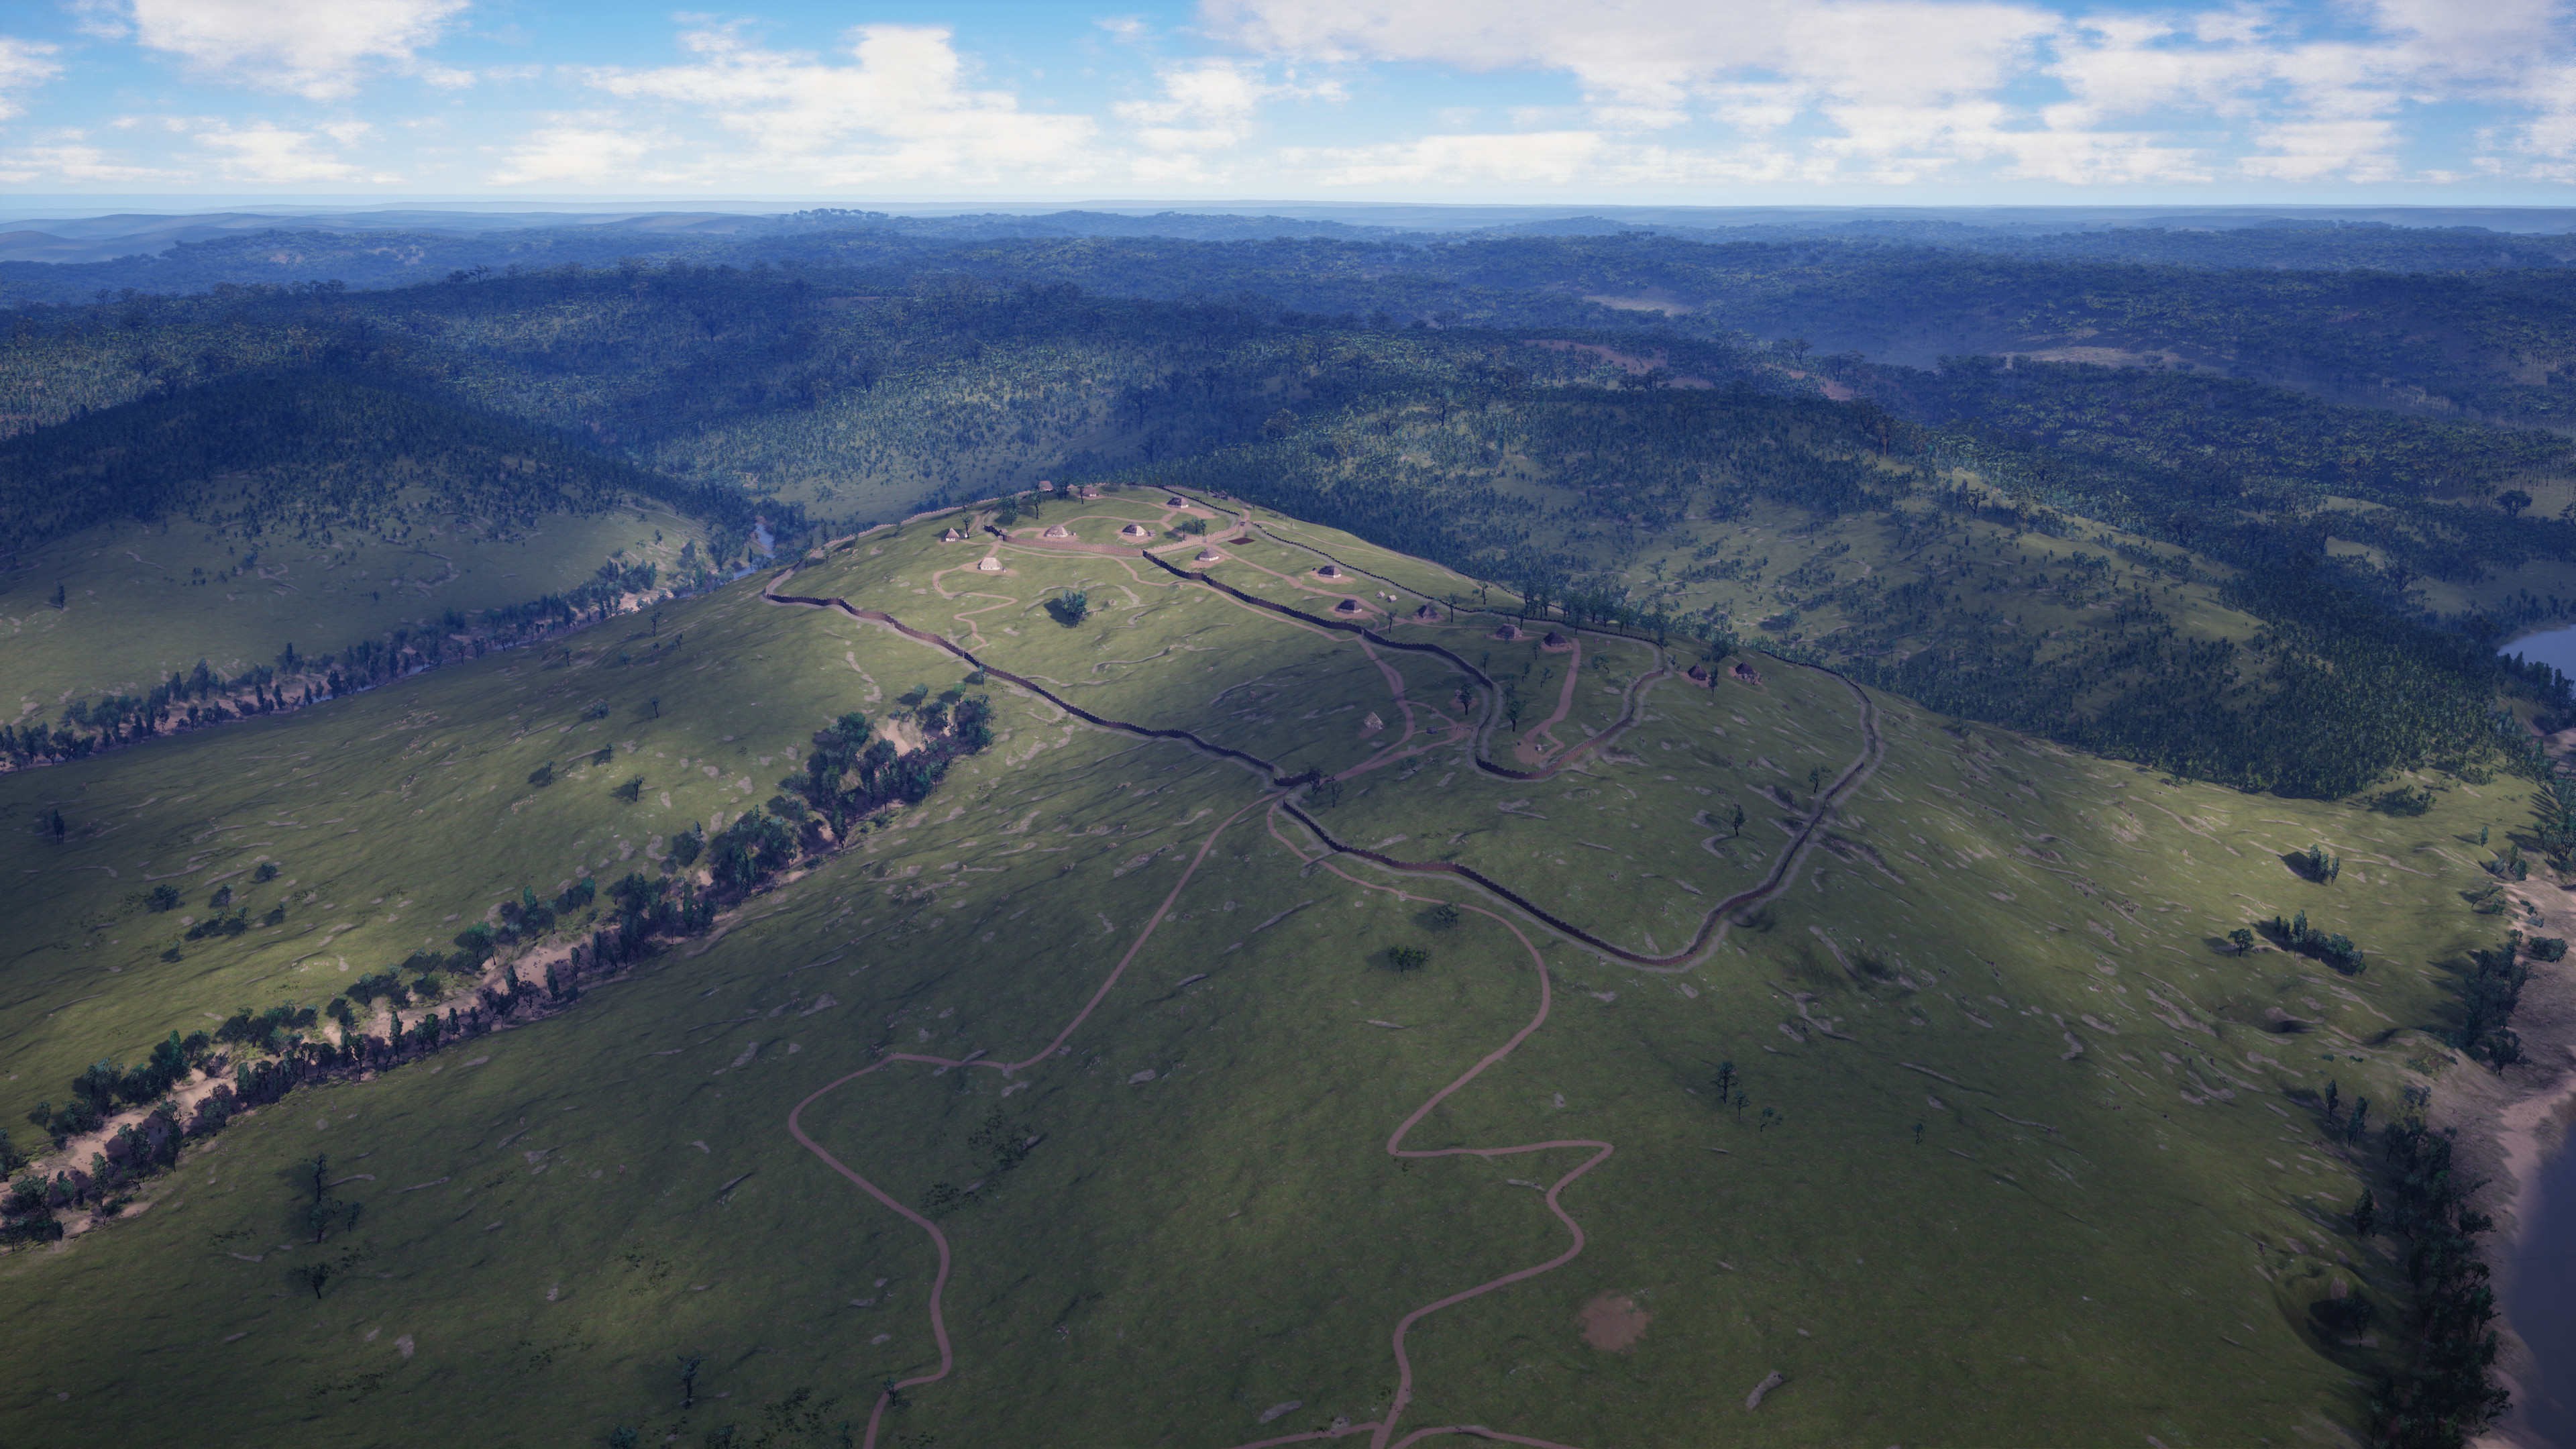 An Aerial View of the Heiligenberg. The roads and walls were placed using my own custom made blueprints. In addition to snapping meshes to the terrain, these tools deform the landscape and control the distribution of materials and foliage.